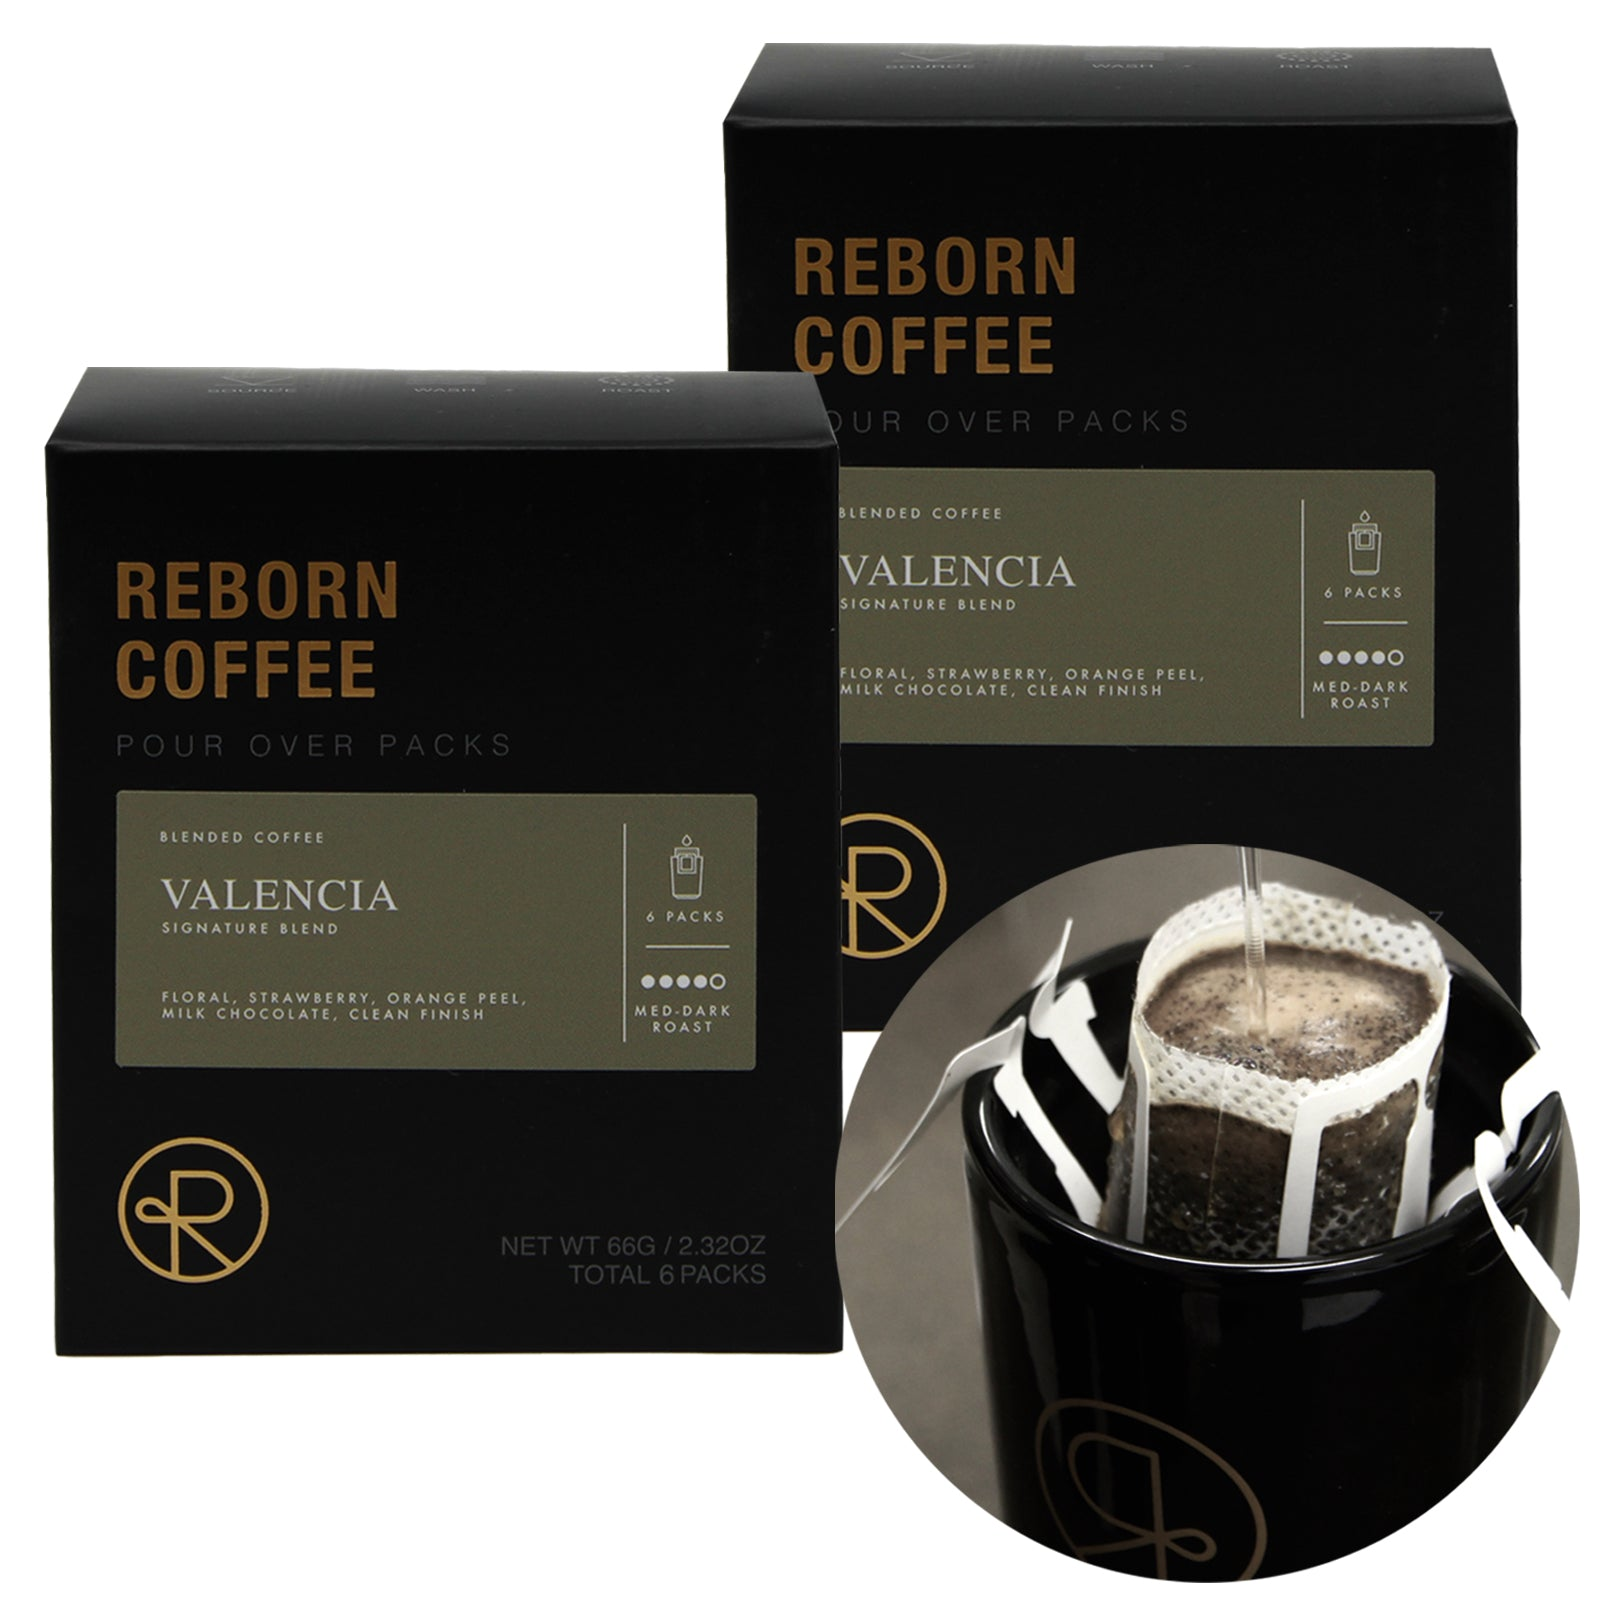 Reborn Coffee Drip Bag Coffee Gift Pack-Best Mother's(Father's) Day Gift-Reborn Coffee Signature Blend Valencia